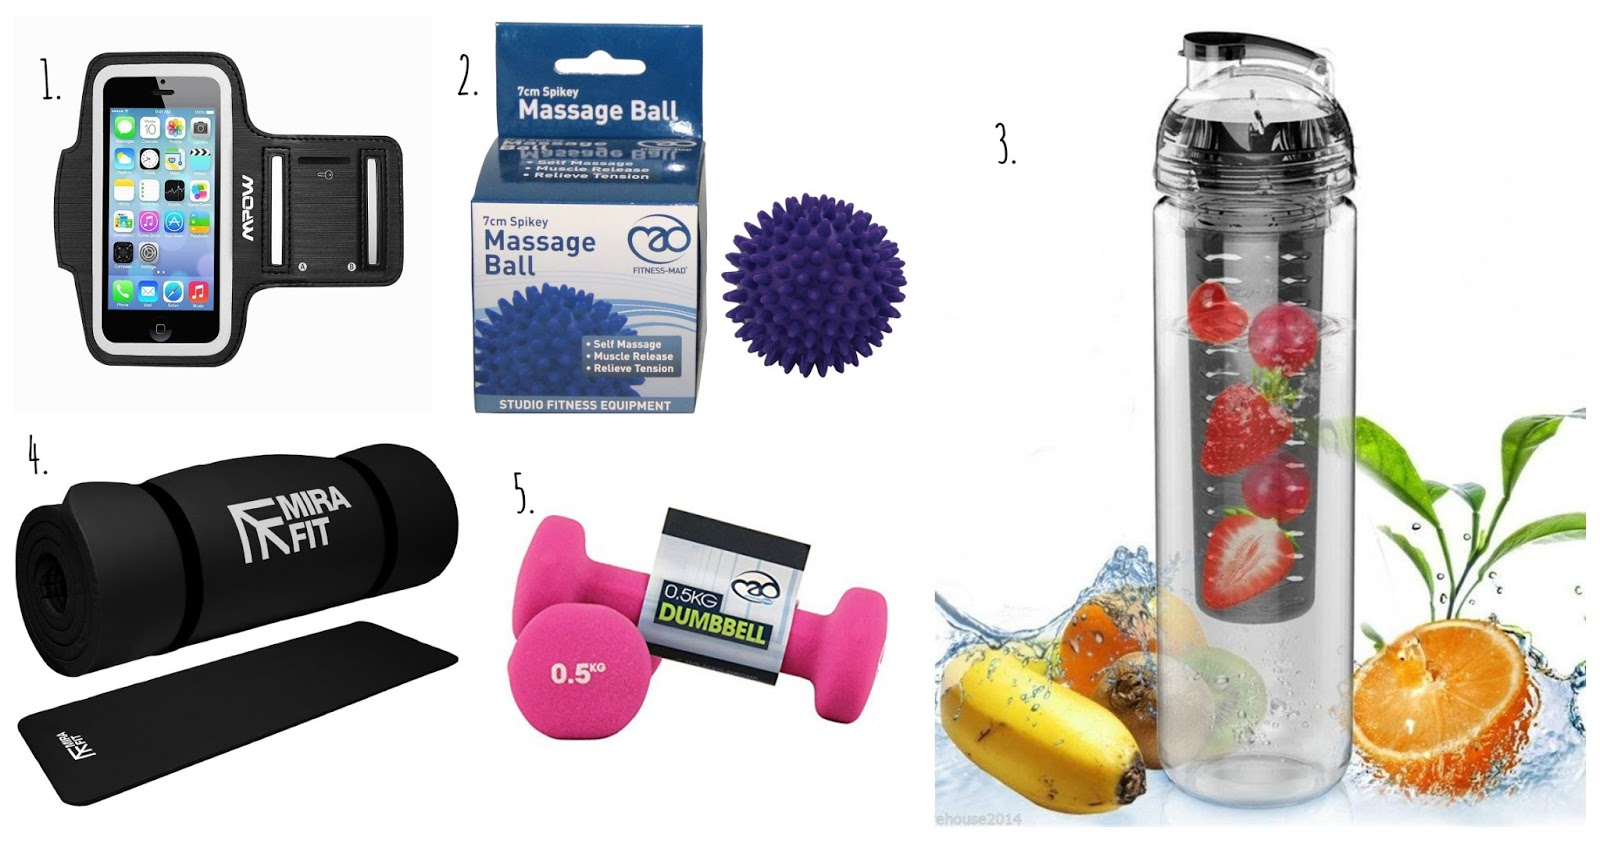 Fitness Gift Guide: UNDER £10